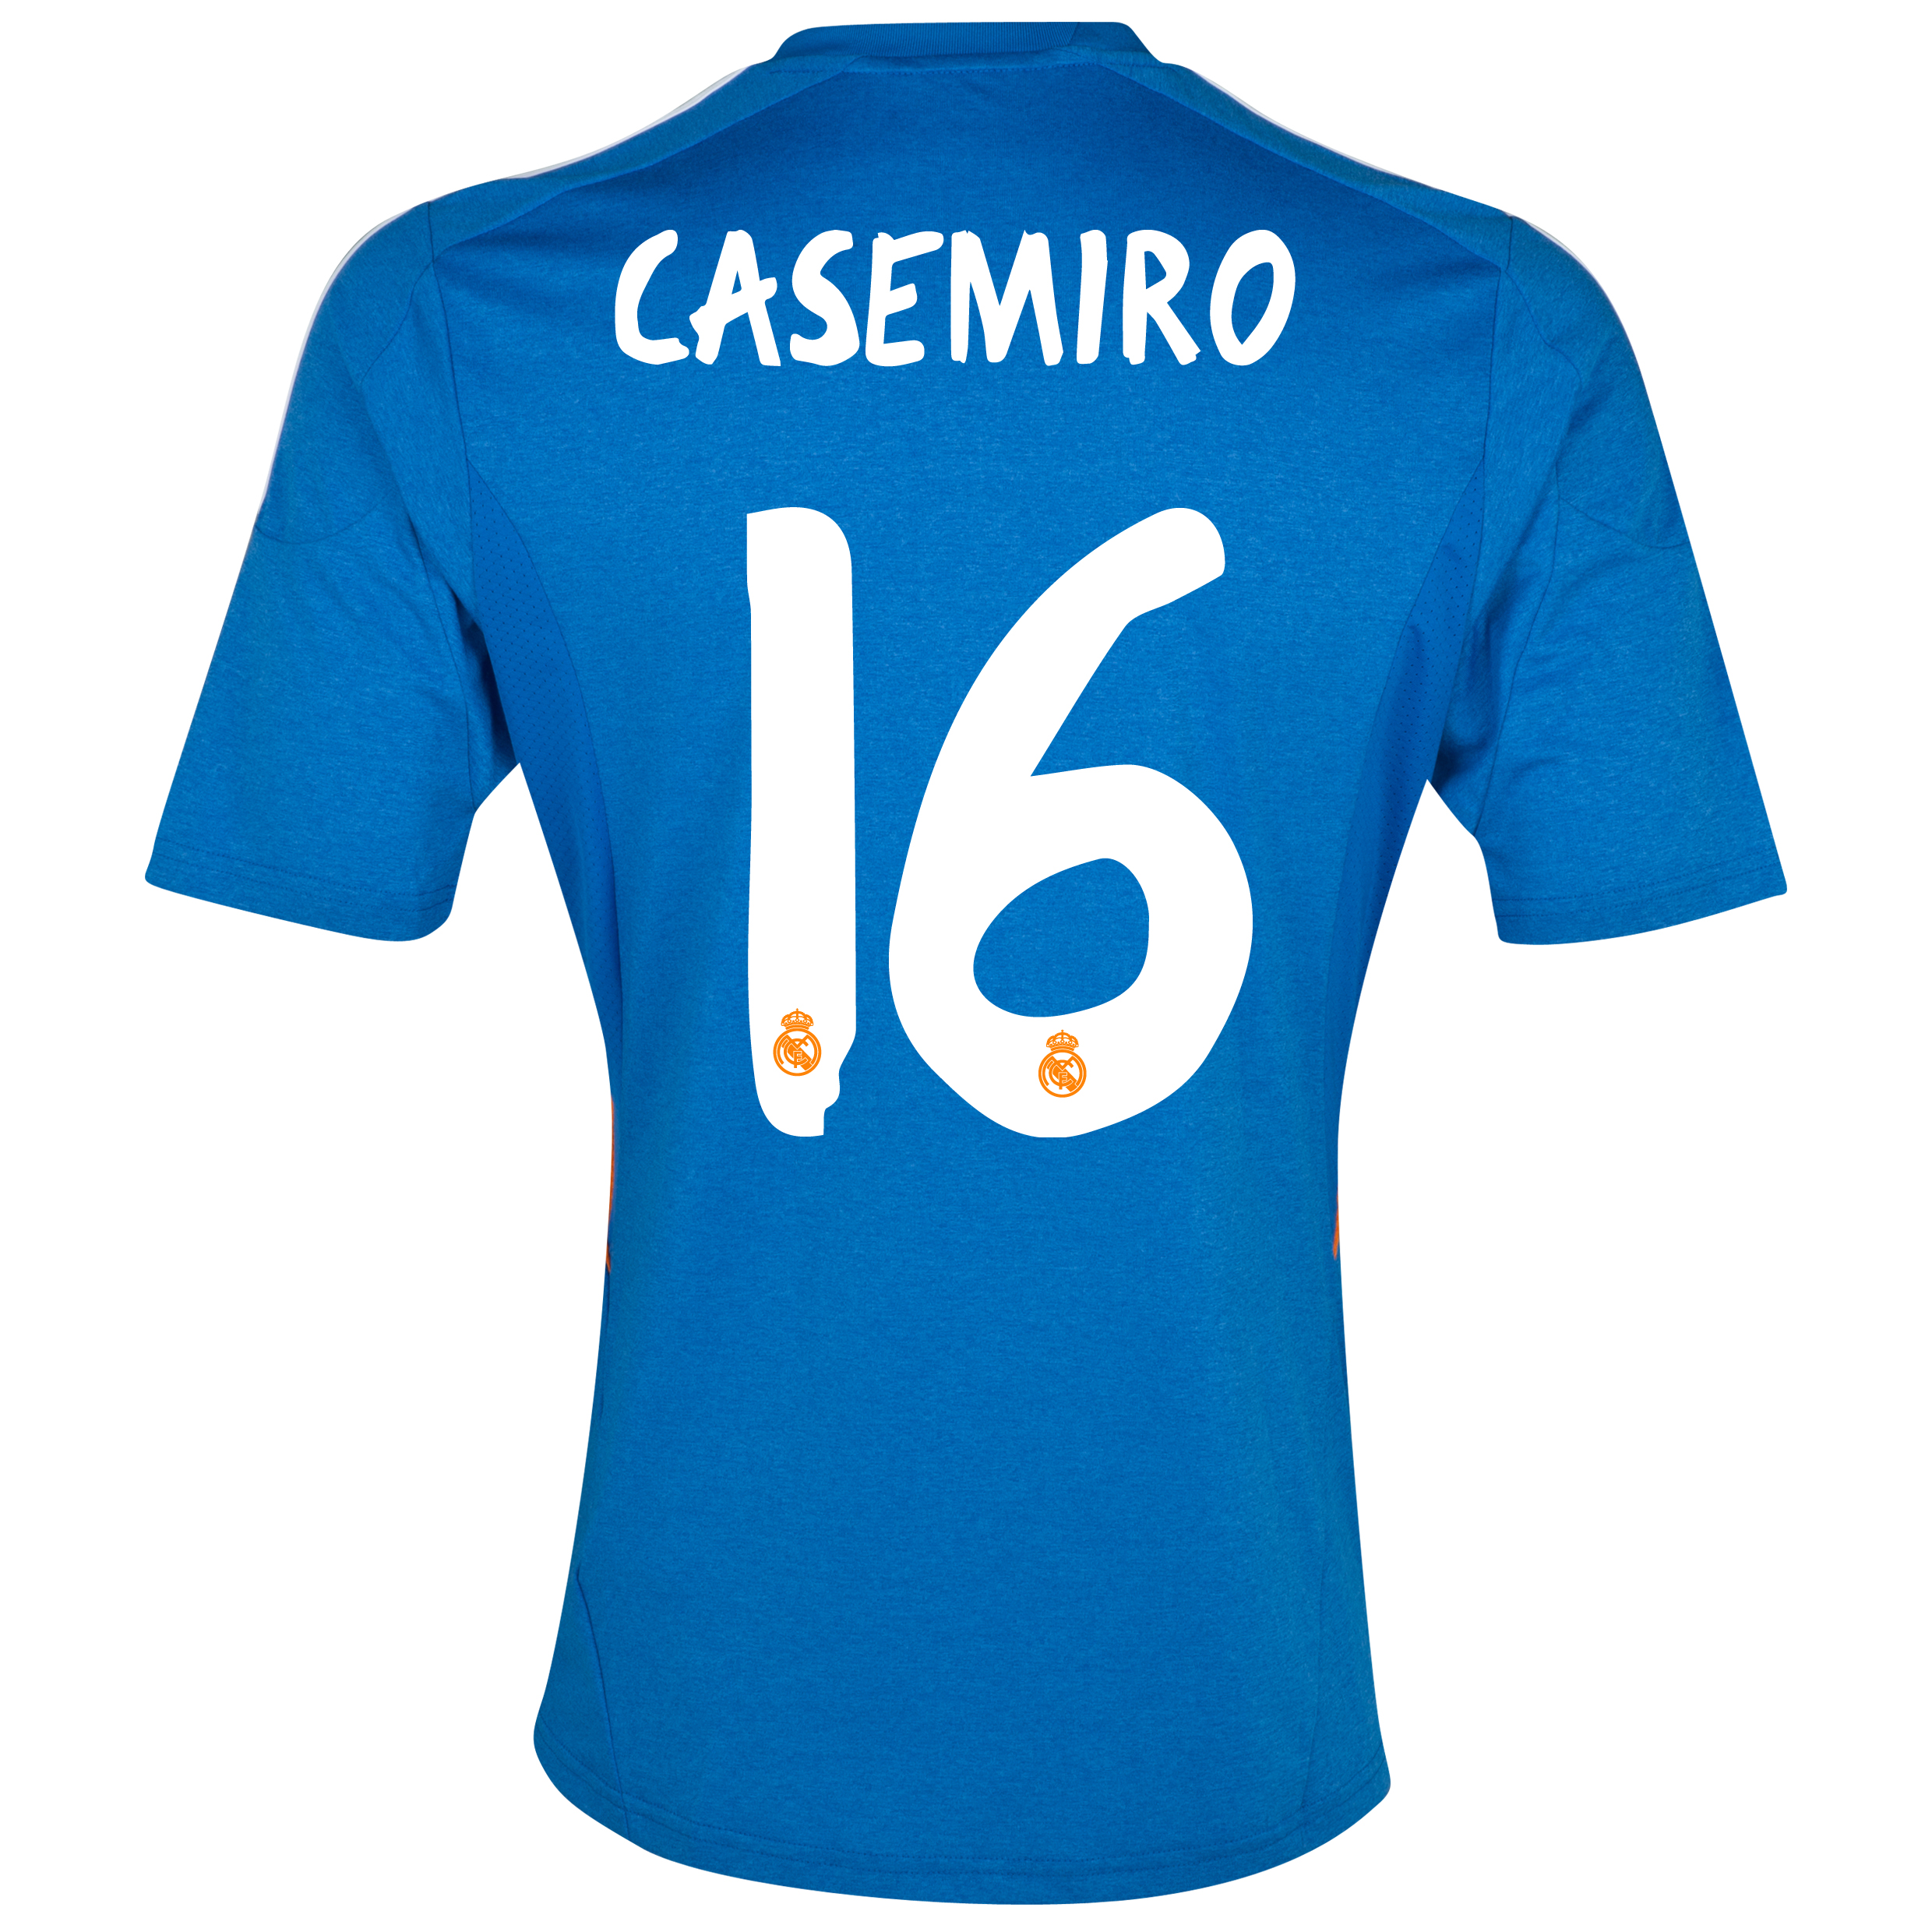 Real Madrid Away Shirt 2013/14 with Casemiro 16 printing